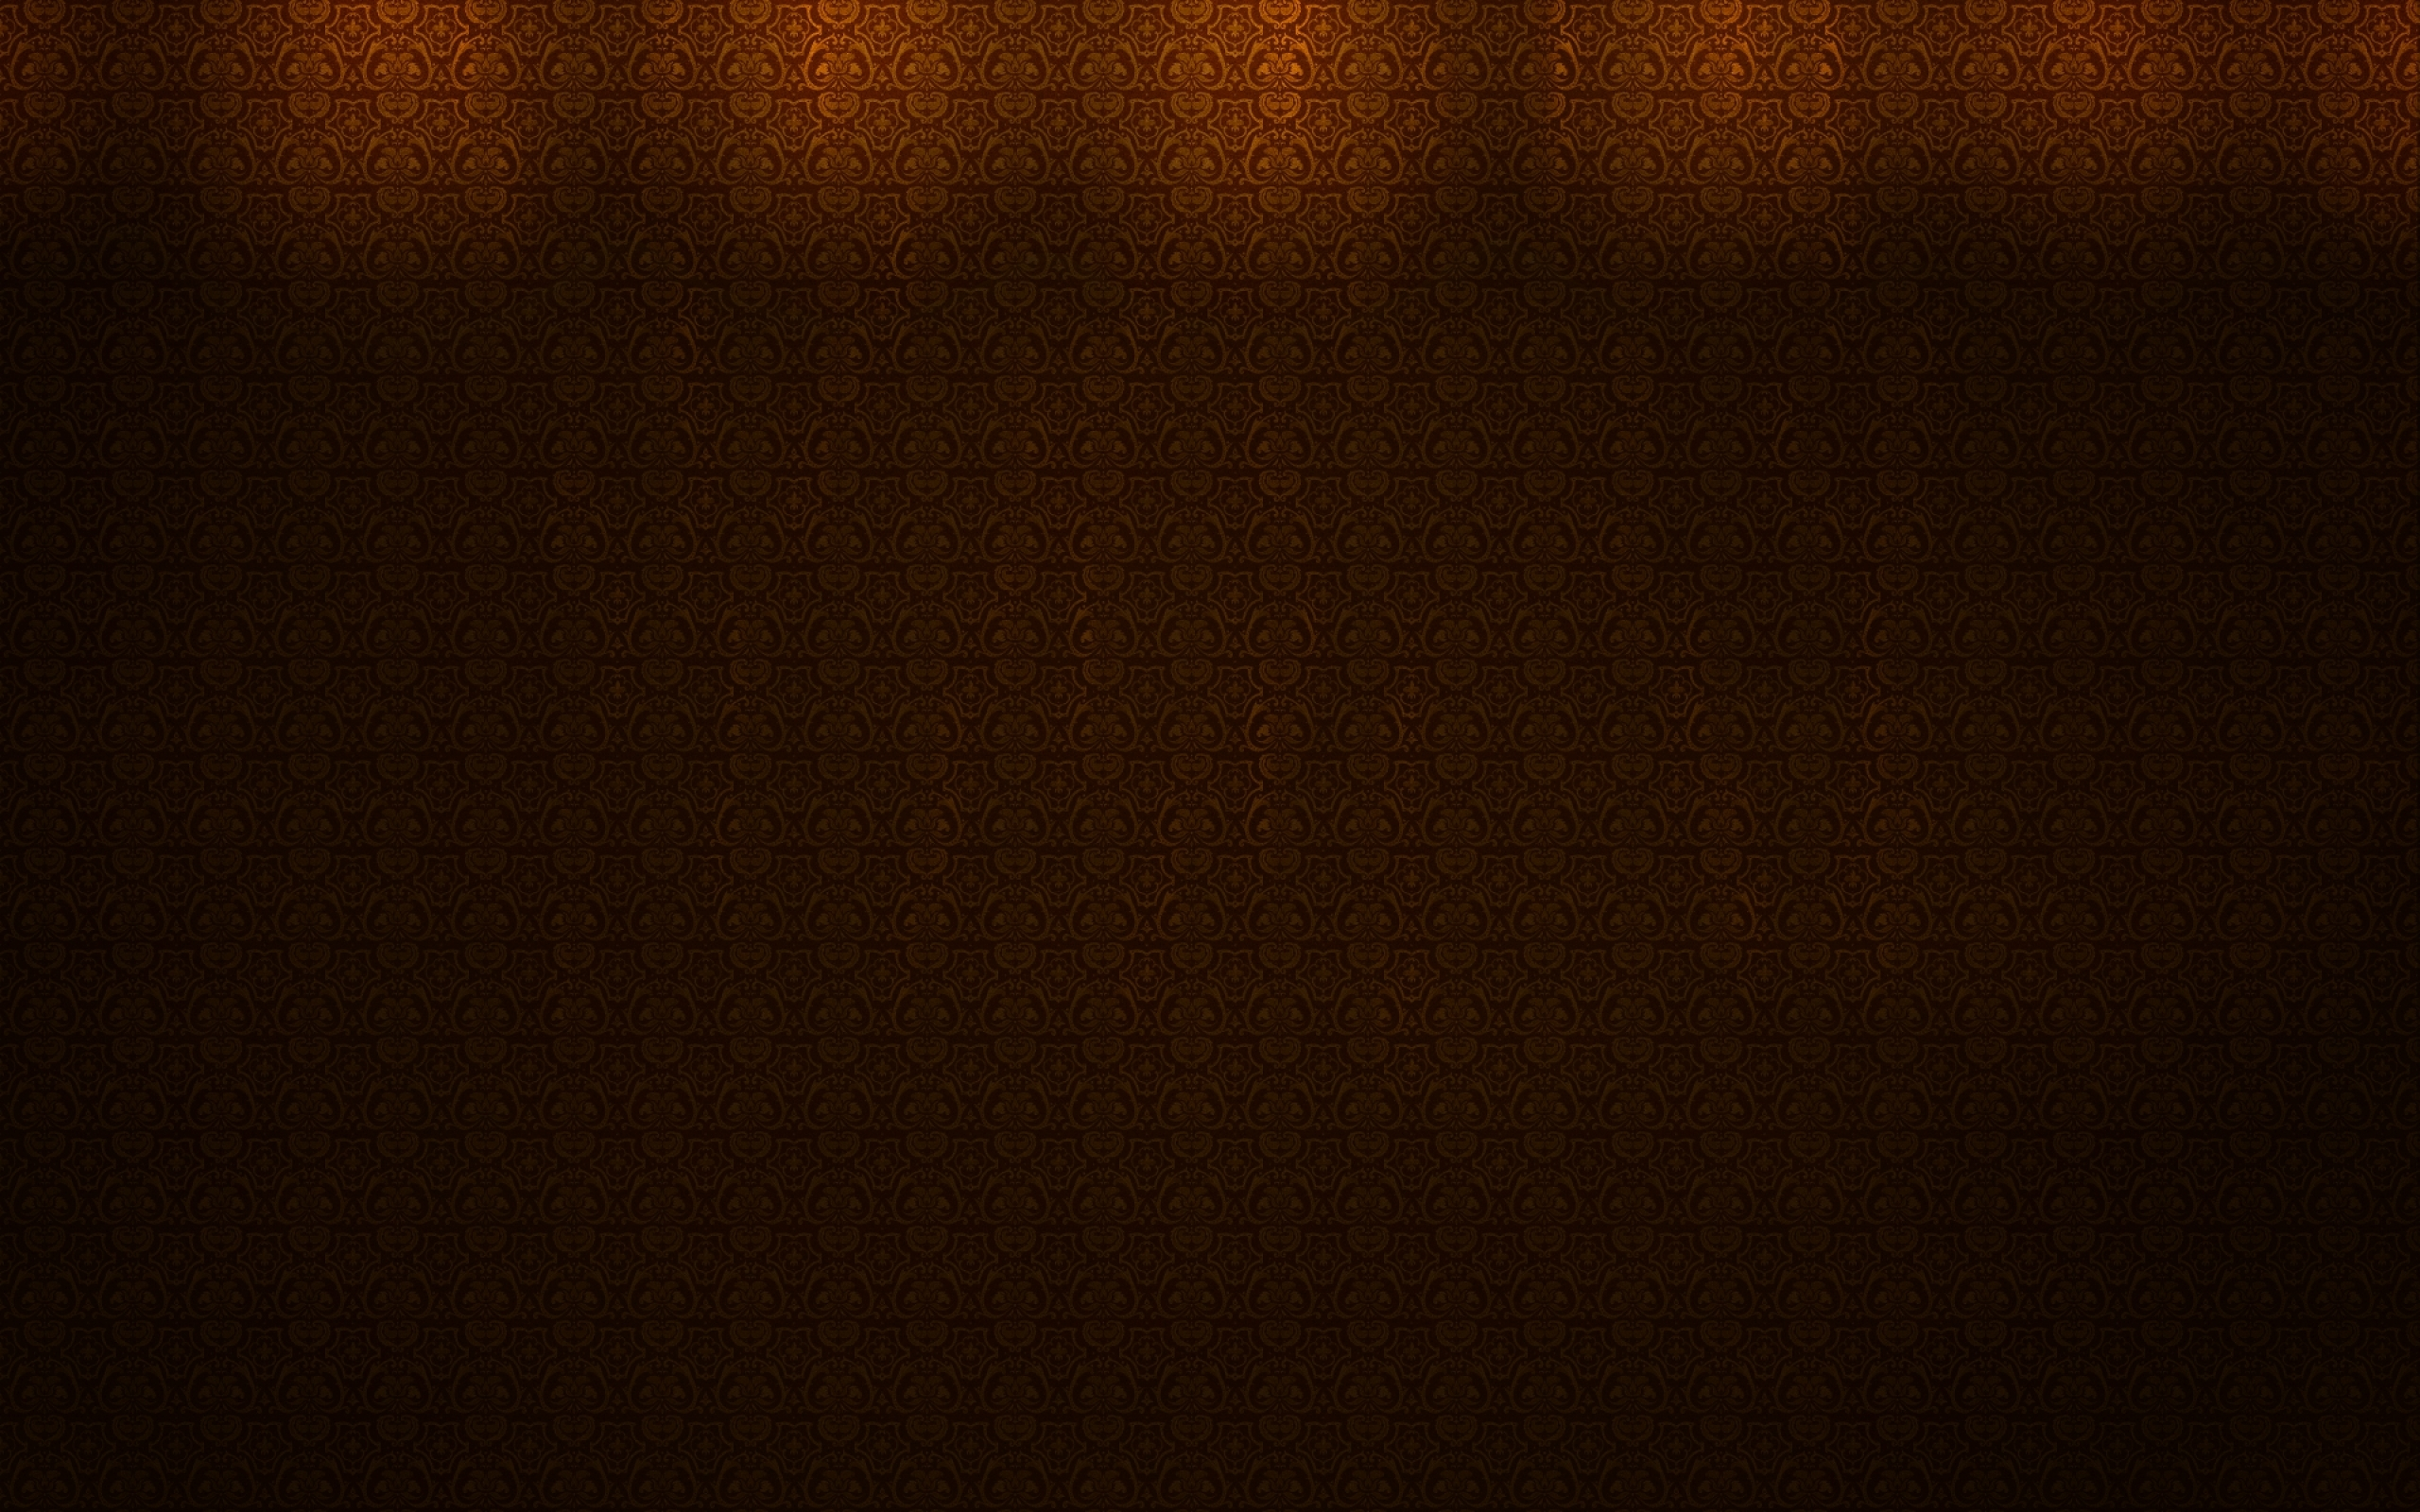 2 brown hd wallpapers backgrounds wallpaper abyss for Brown wallpaper for walls